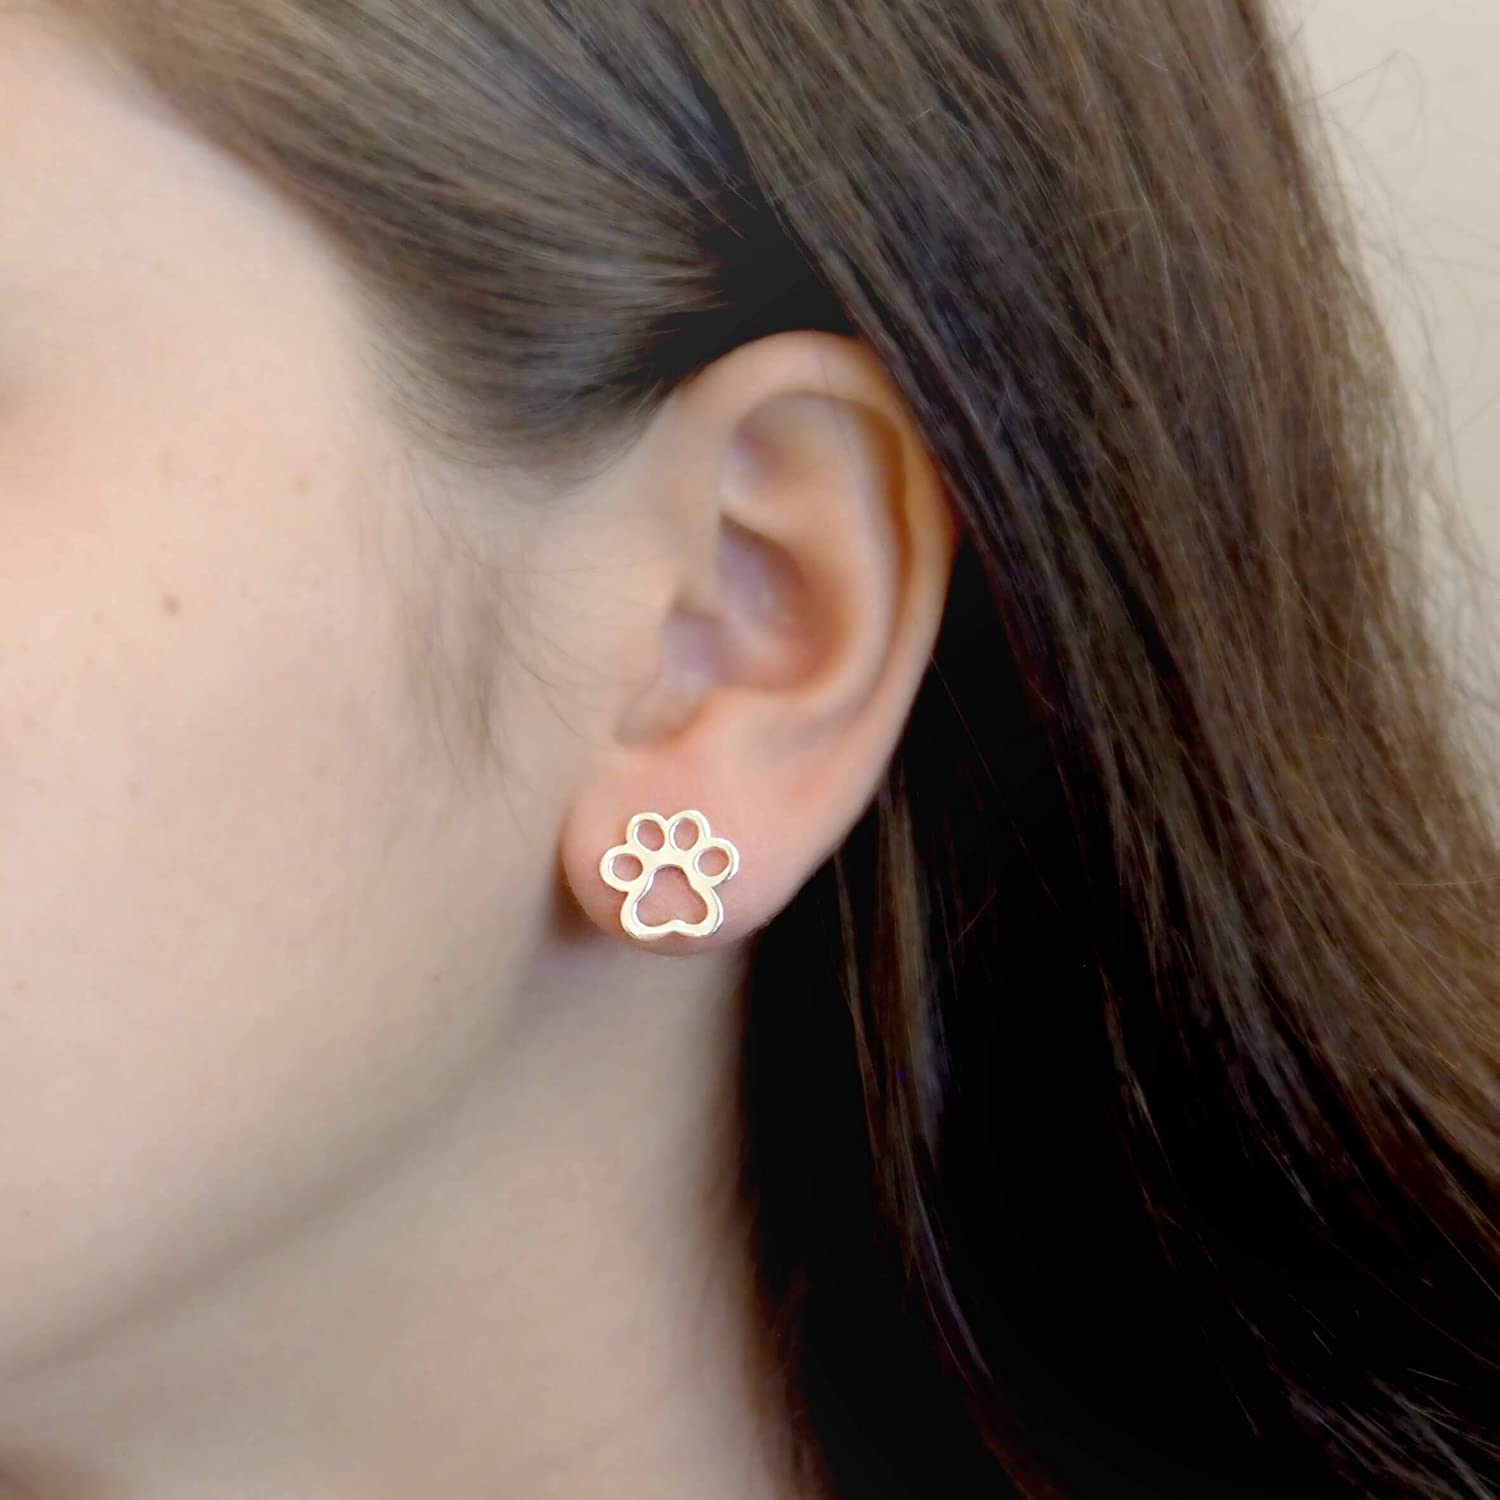 Amazon.com: Sterling Silver Paw Print Stud Earrings: Clothing, Shoes & Jewelry